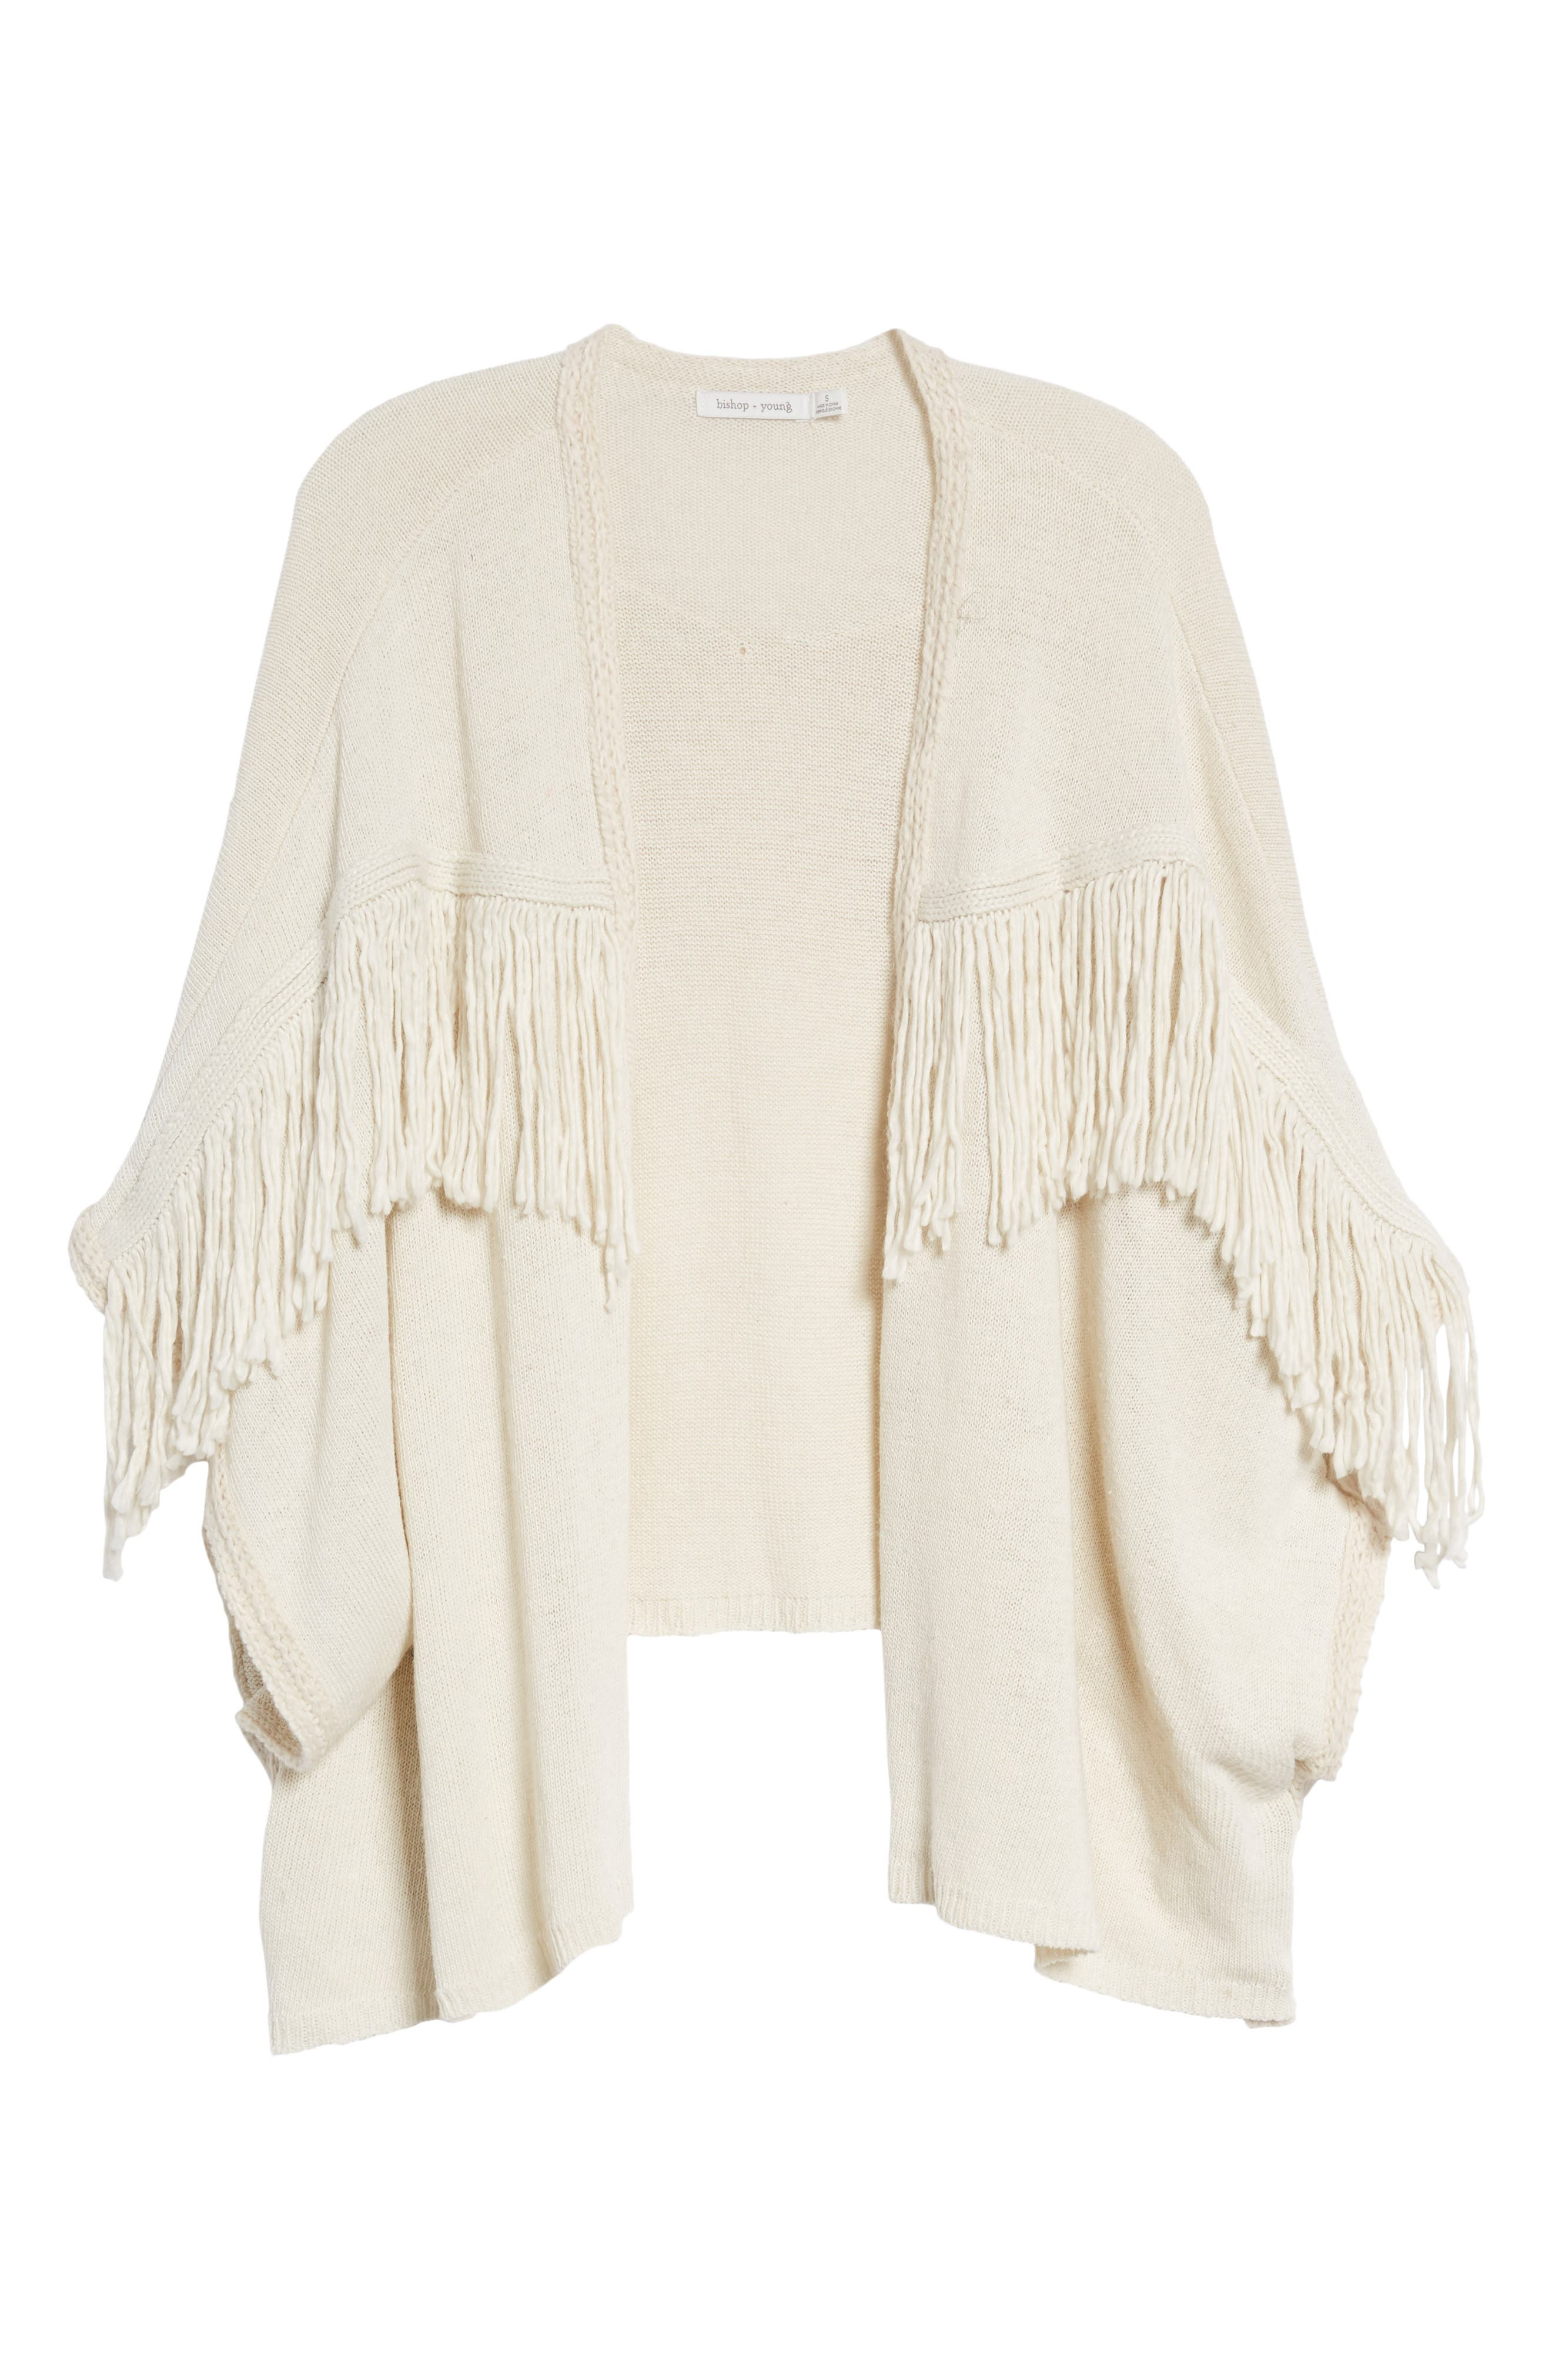 Bishop + Young Fringe Open Front Cardigan,                             Alternate thumbnail 6, color,                             IVORY